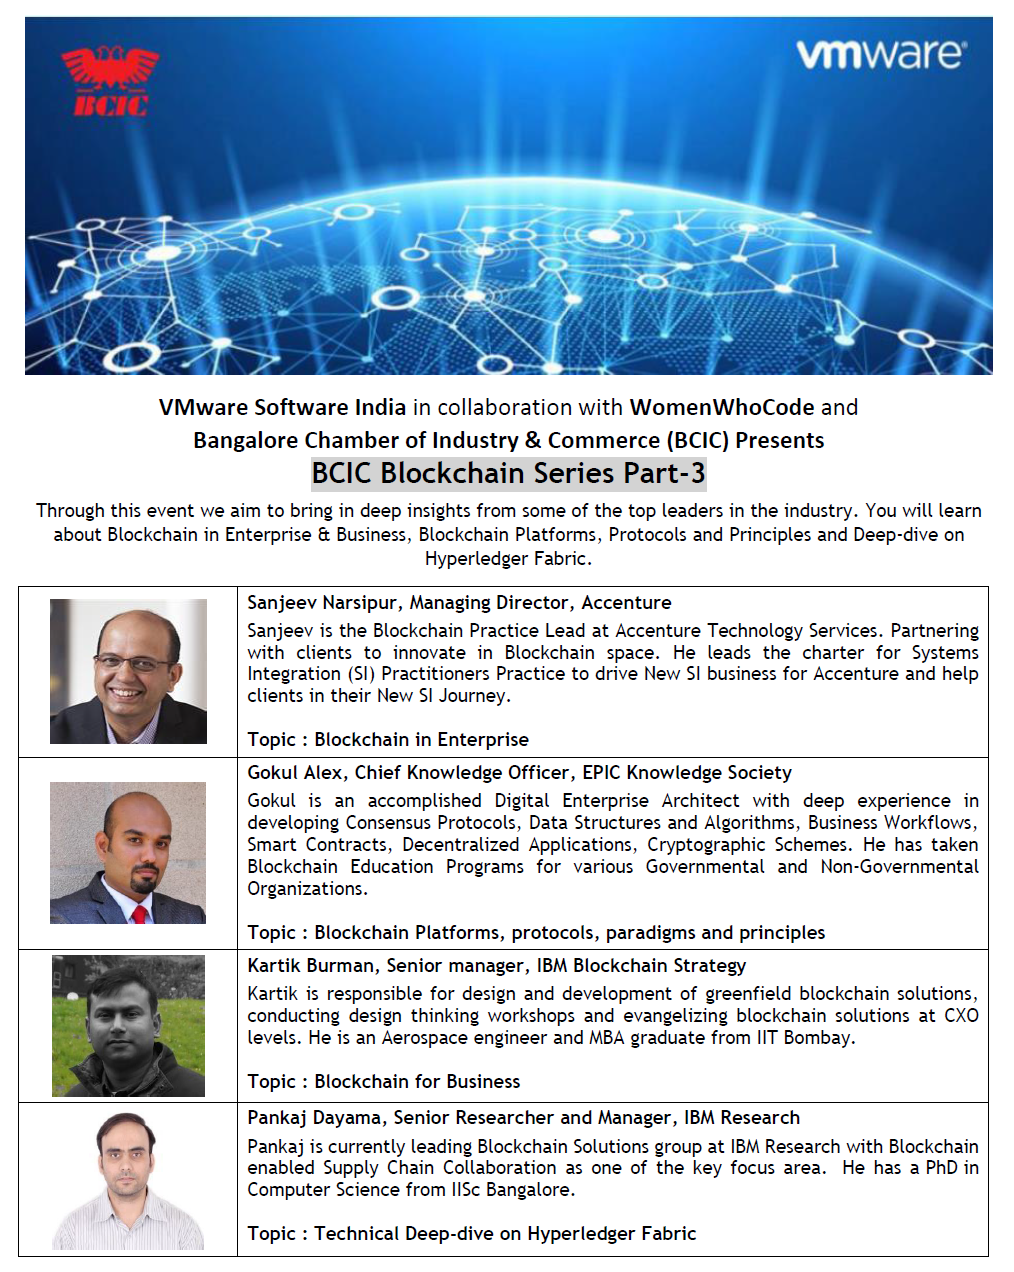 BCIC(Bangalore Chamber of Industries and Commerce) Block Chain Series Part 3